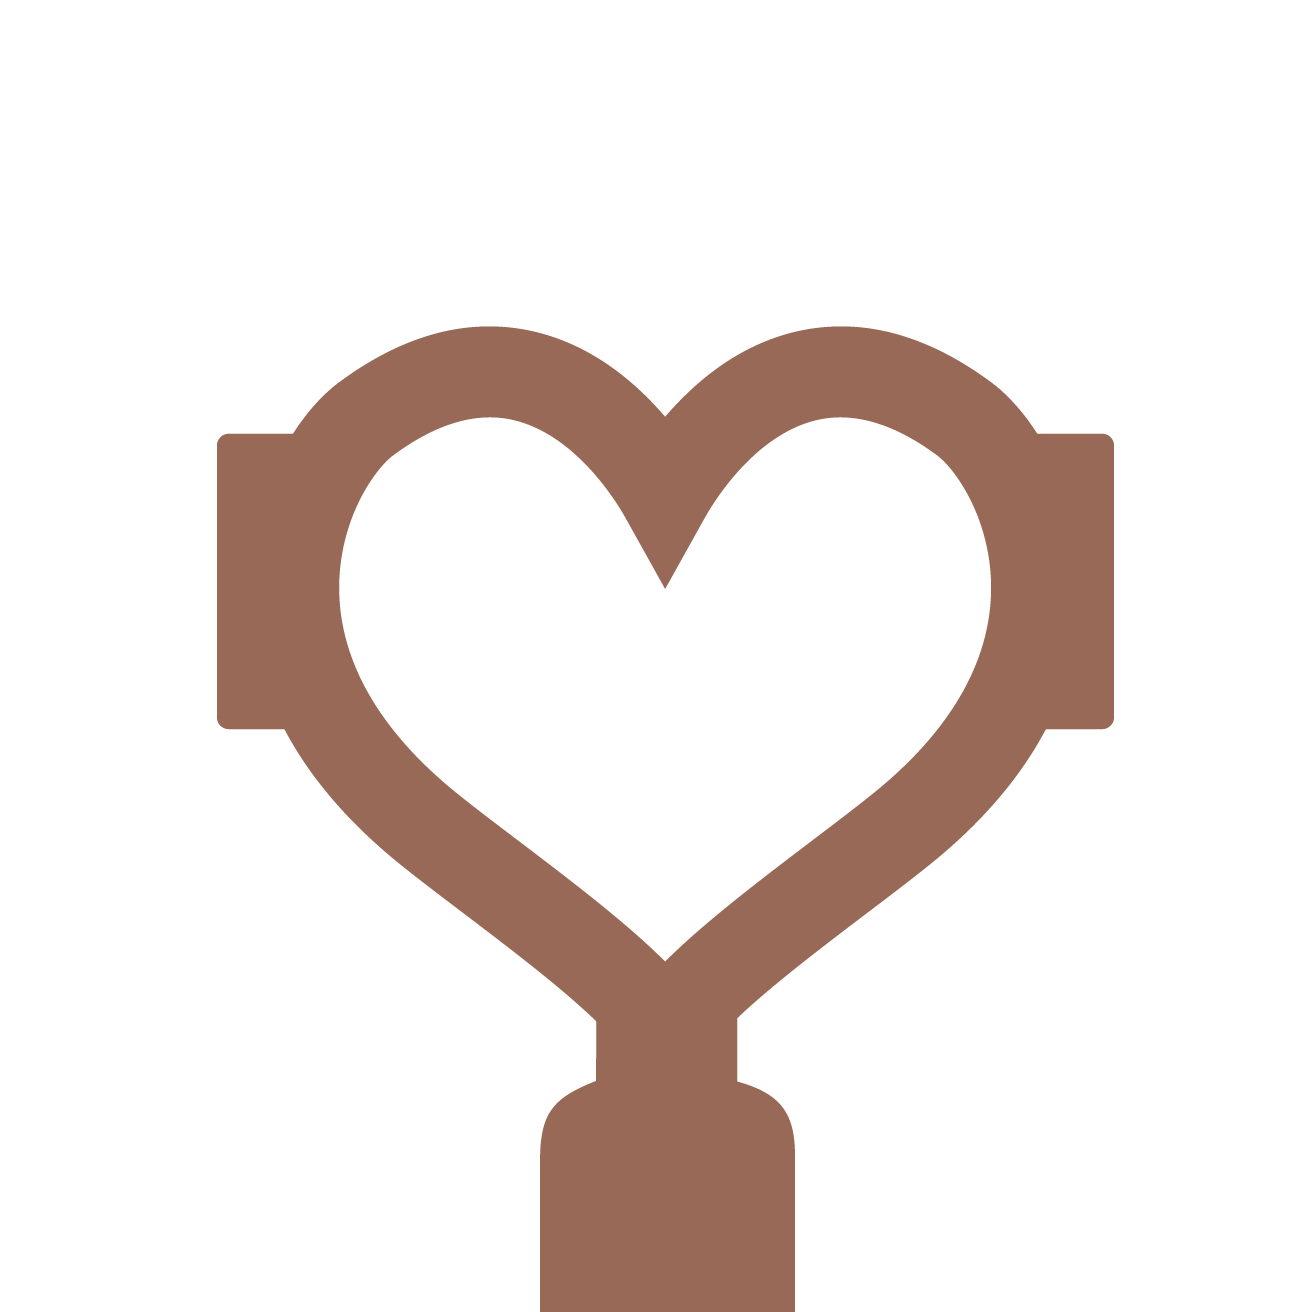 Lelit MaraX Espresso Machine and Grinder Package Deal